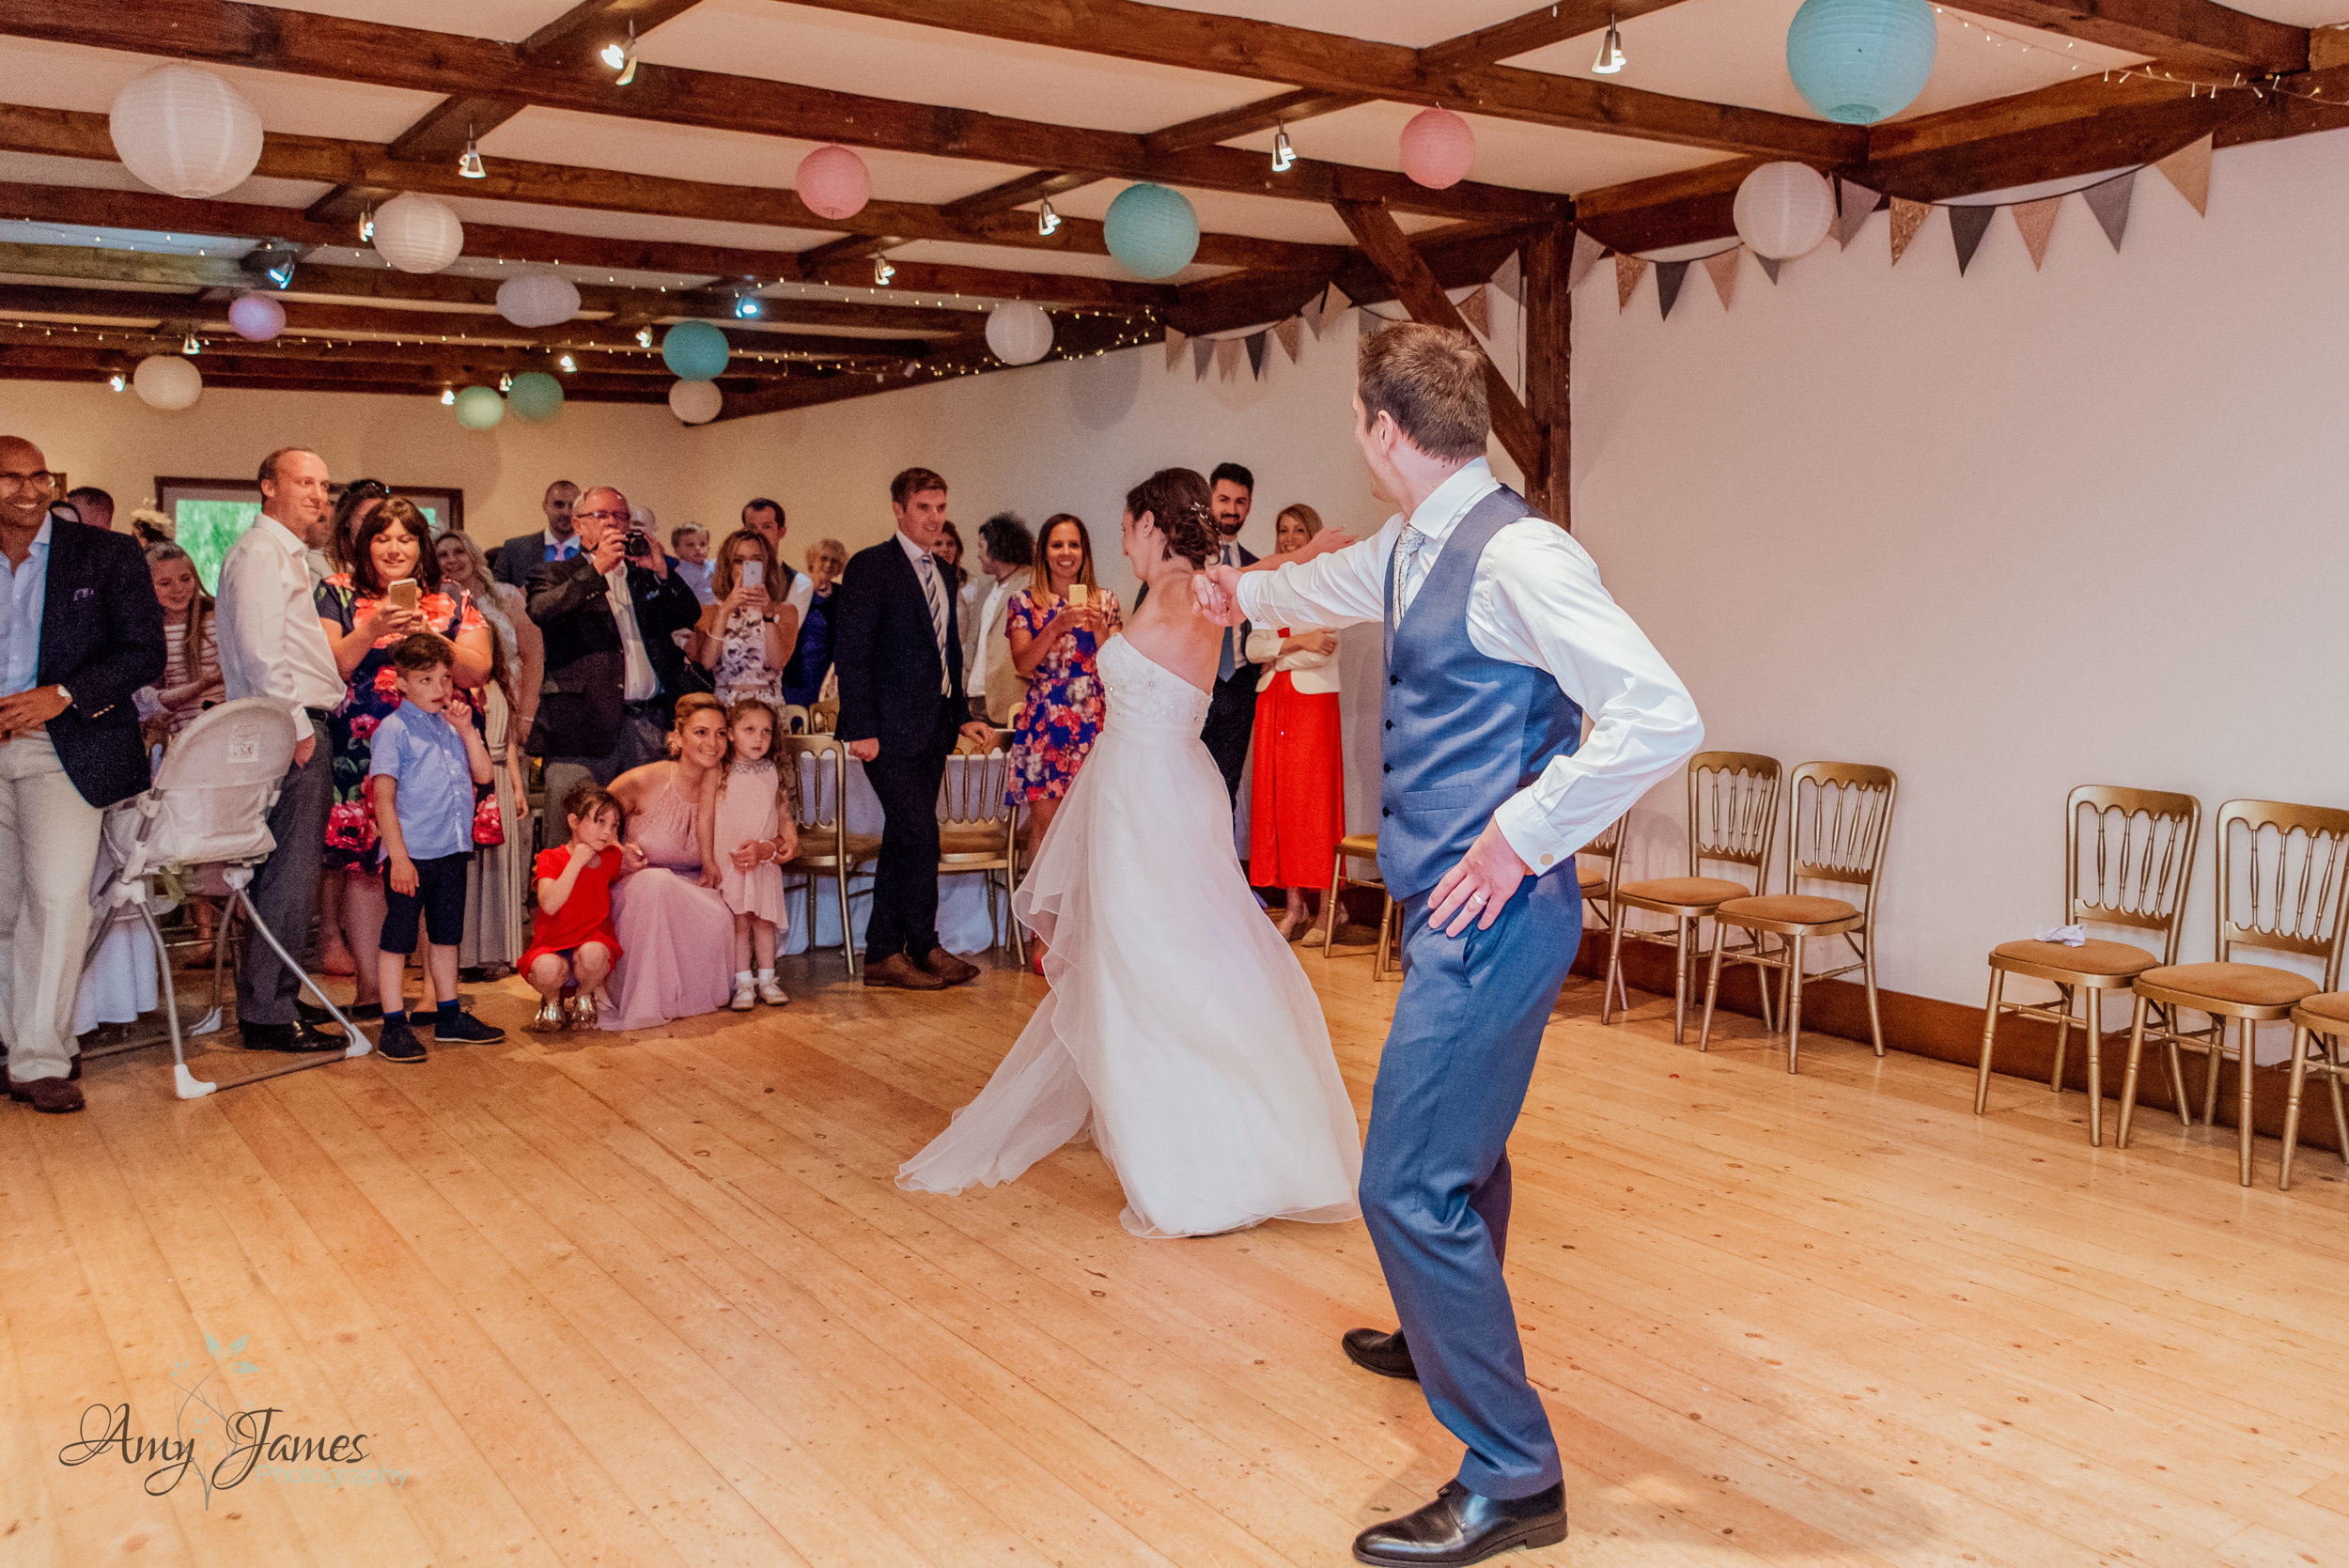 Bride and Groom first dance at Hampshire barn wedding venue by Amy James Photography documentary wedding photographer in Hampshire and Surrey